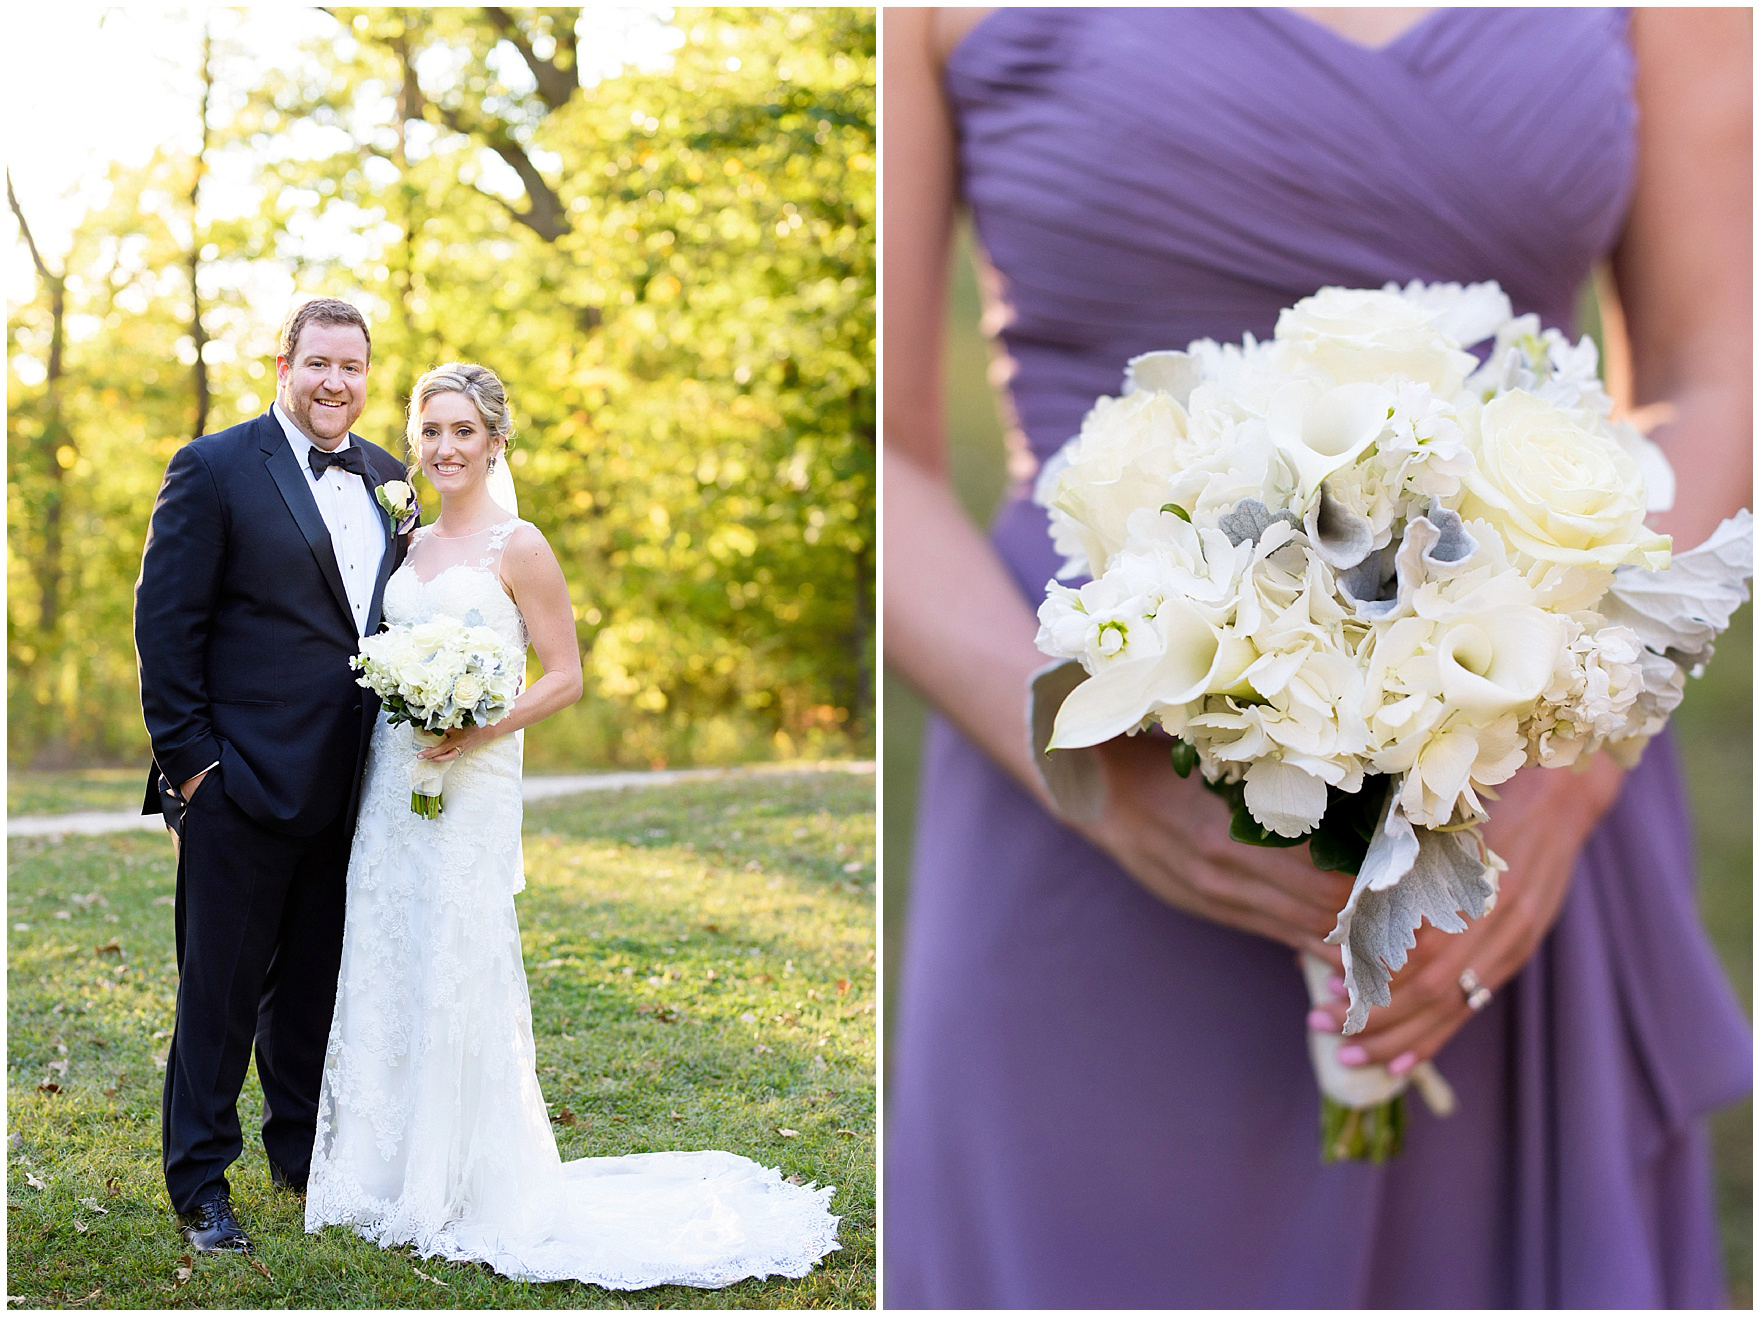 Detail of a bridesmaid's bouquet during a Glen Club Glenview Illinois wedding.